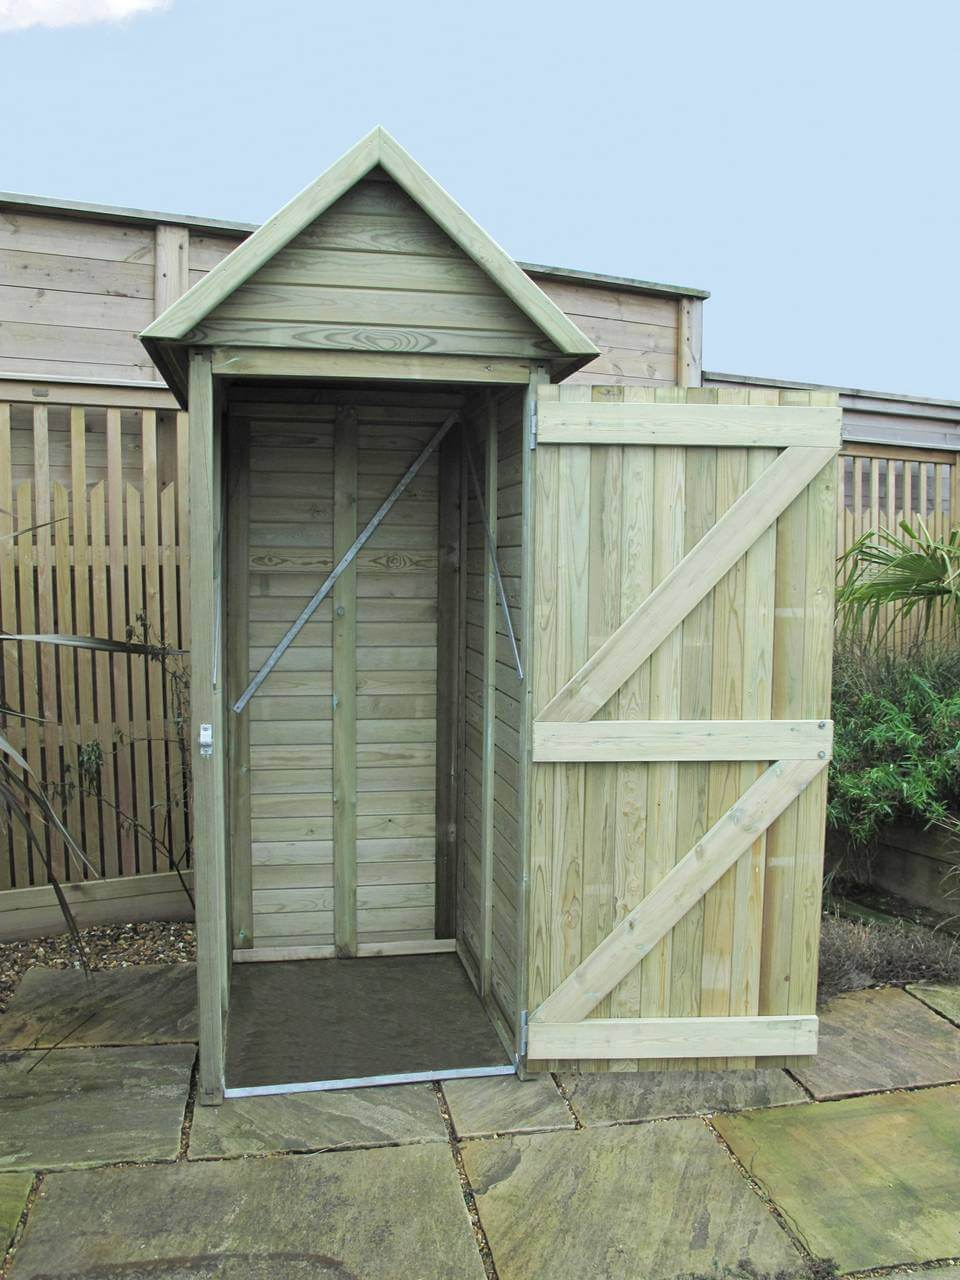 Tool Shed with door open